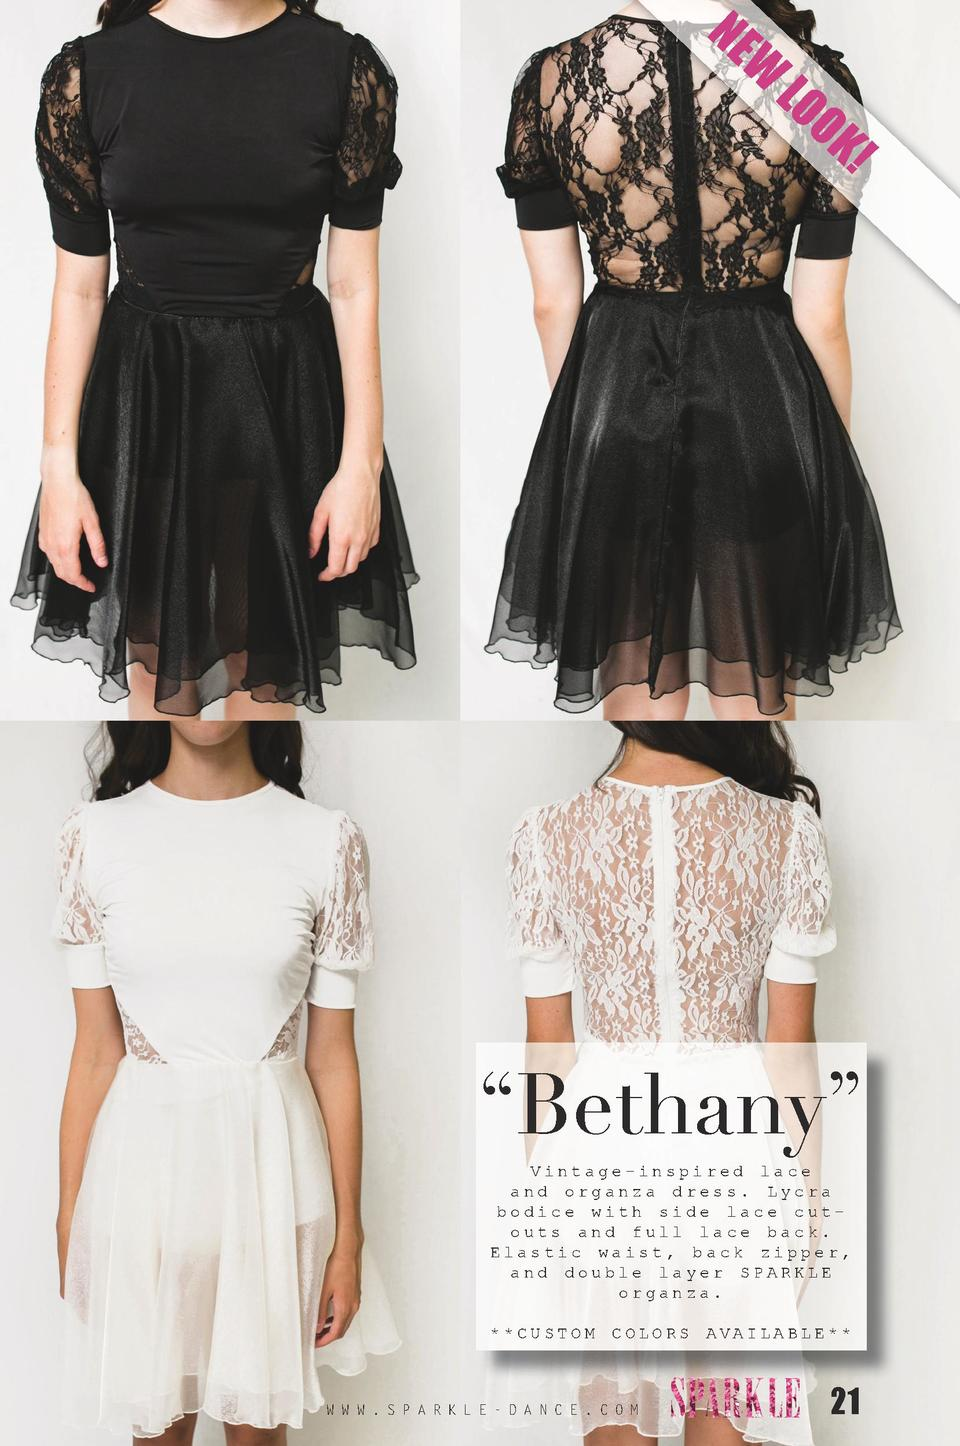 NE  W  LO O  K      Bethany    Vintage-inspired lace and organza dress. Lycra bodice with side lace cutouts and full lace ...